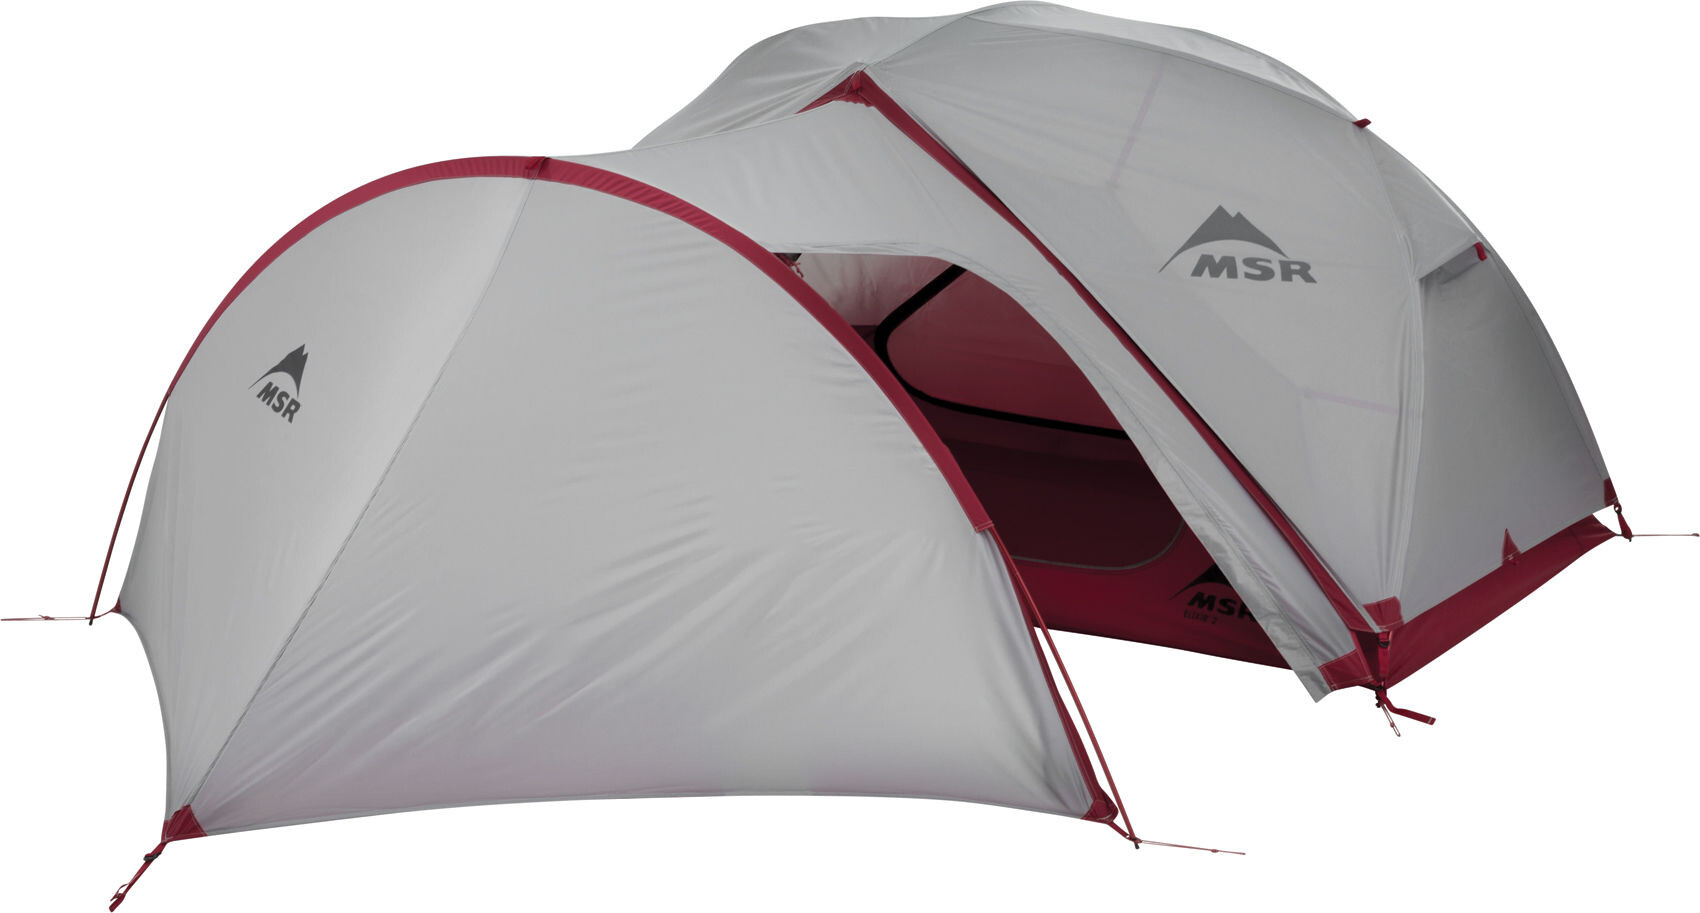 Msr Gear Shed V2 Tente Gray Red Sur Campz